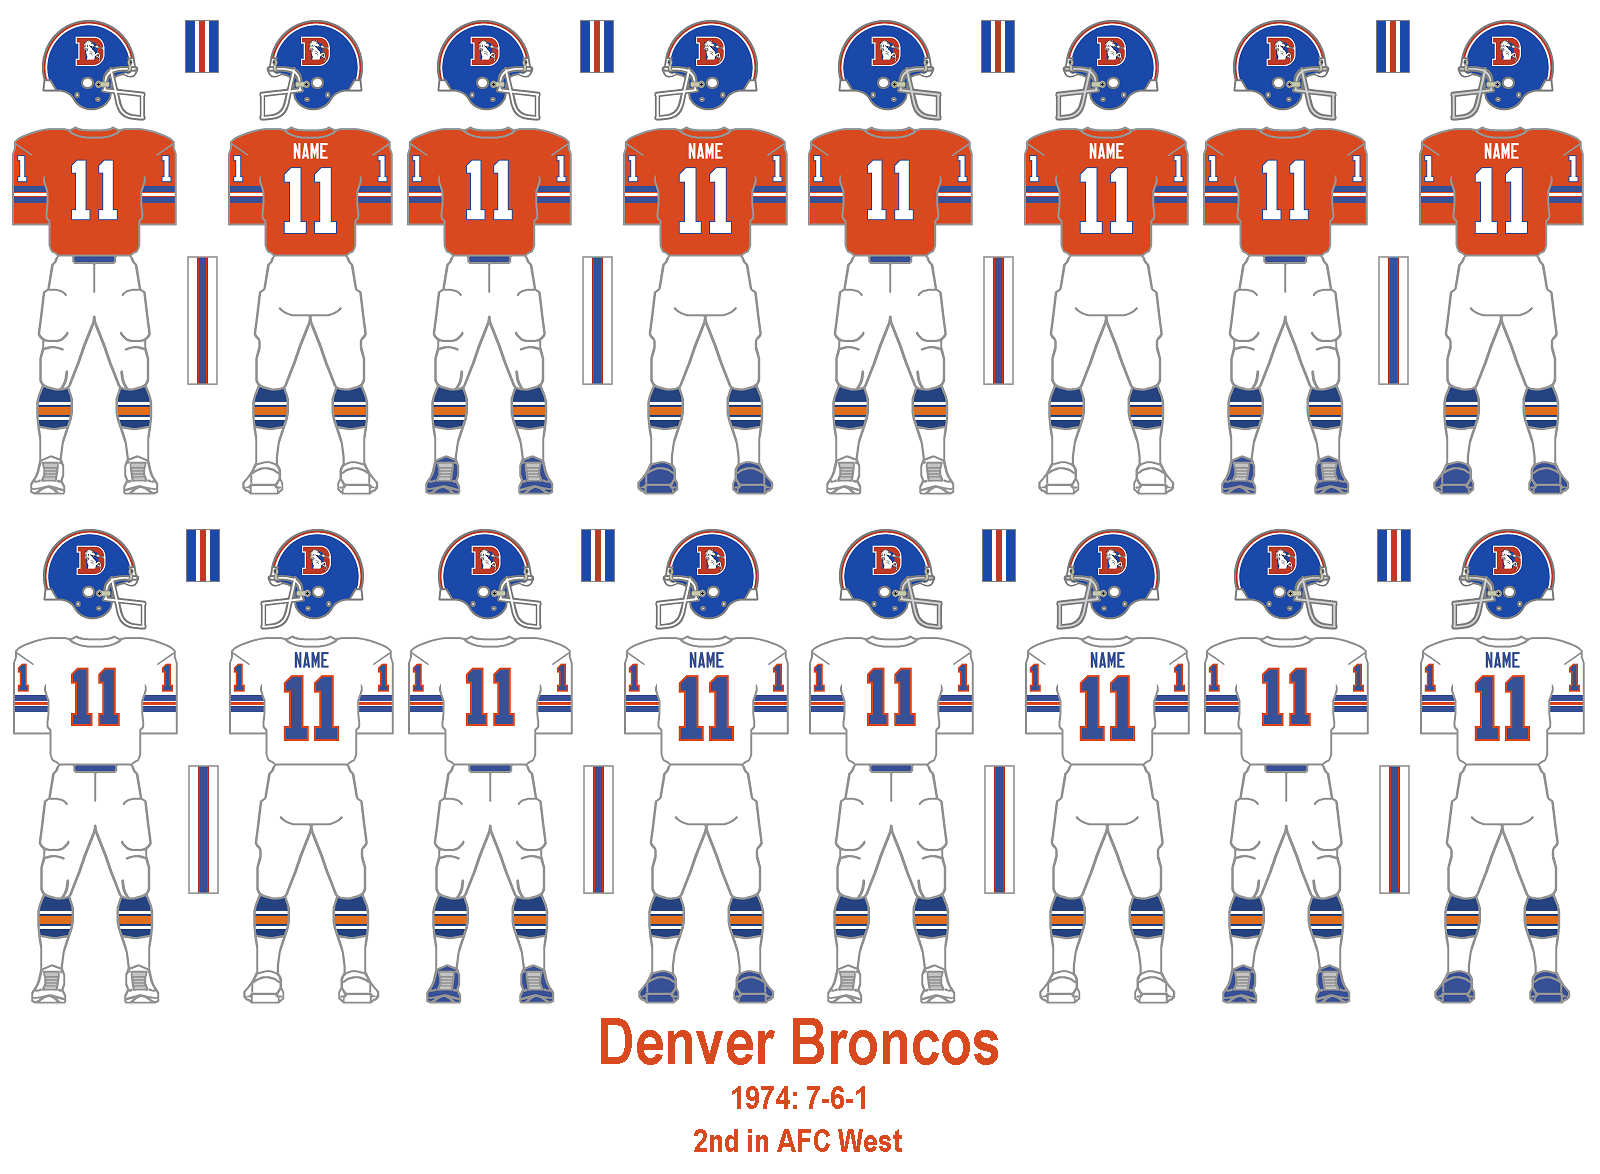 5f90f1dfb75 ... classic look; please bring it back, Denver}. {Here} is what the Broncos  wore in their first Super Bowl appearance in 1978.